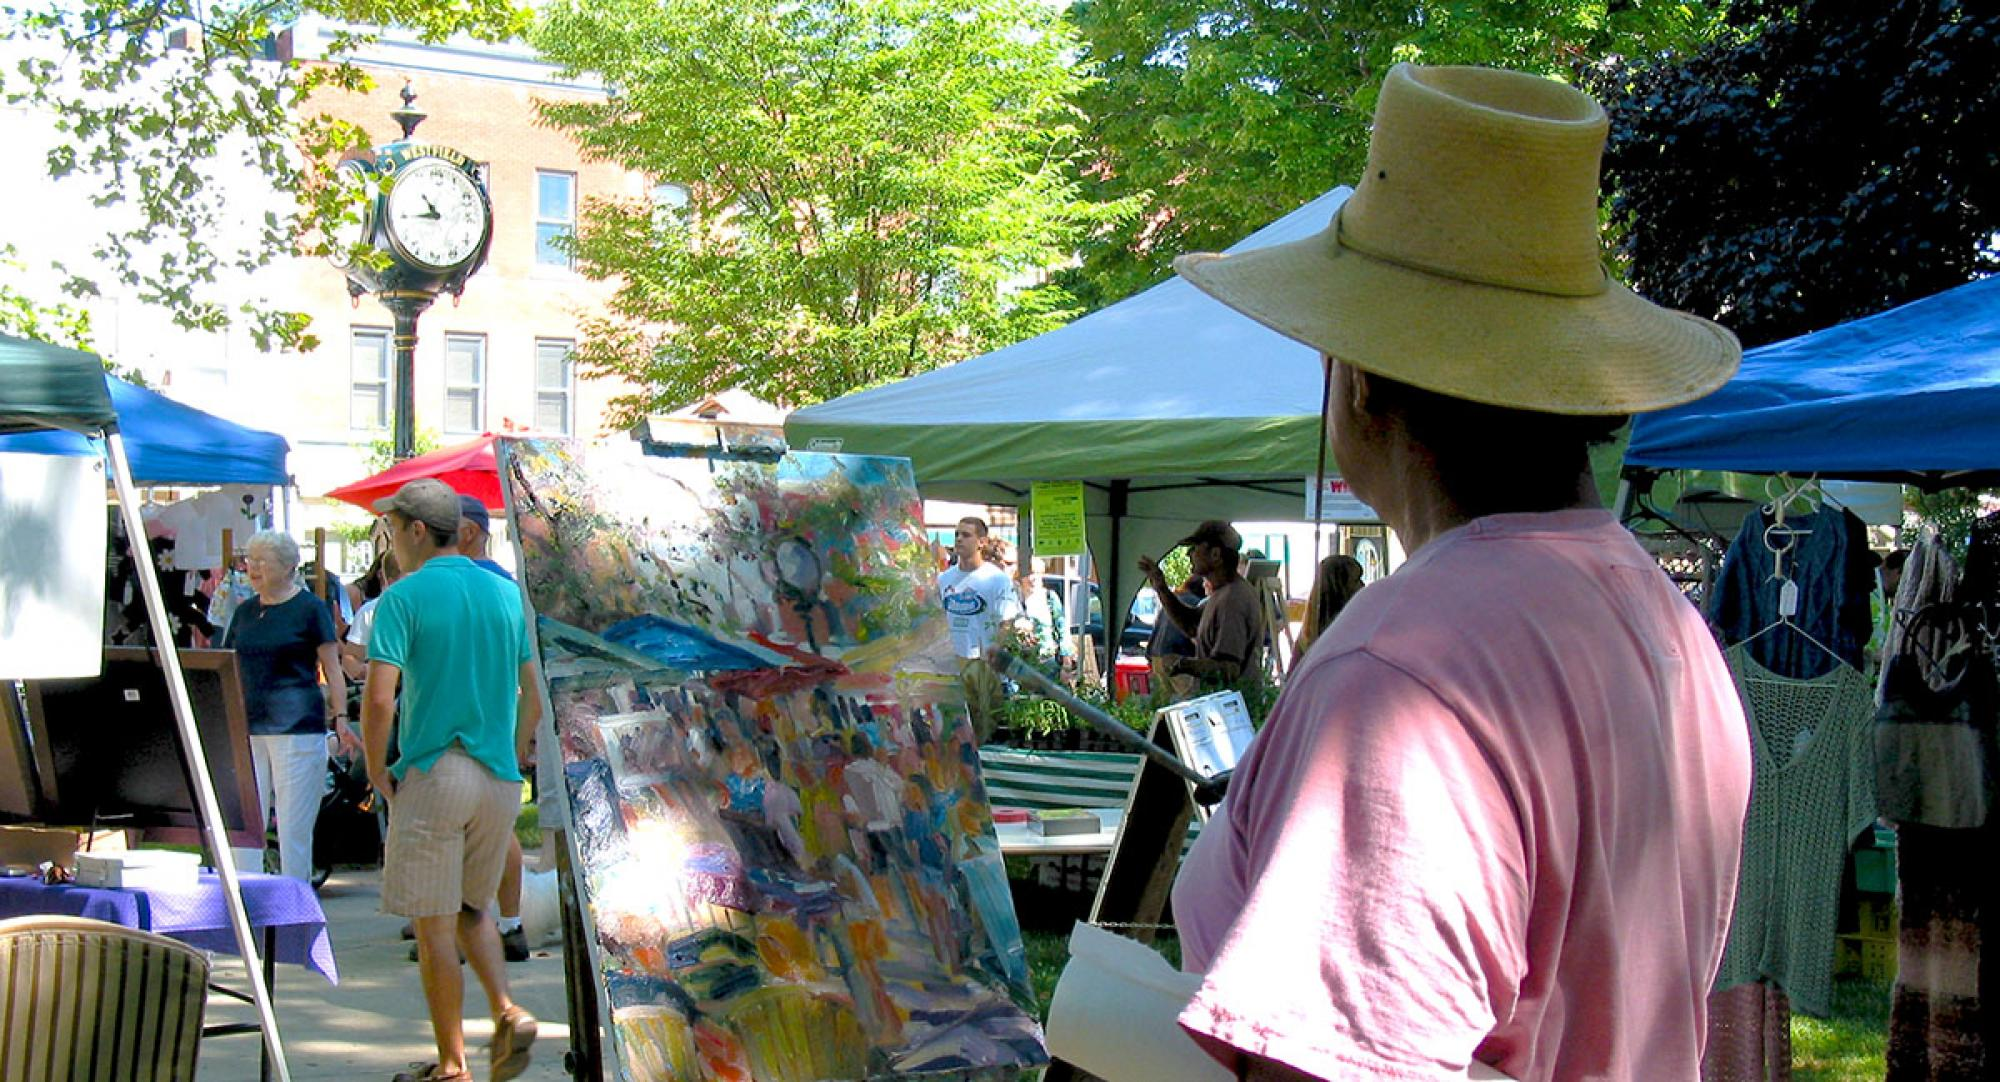 Produce, Art and Artist collide at the Westfield Farmers Market